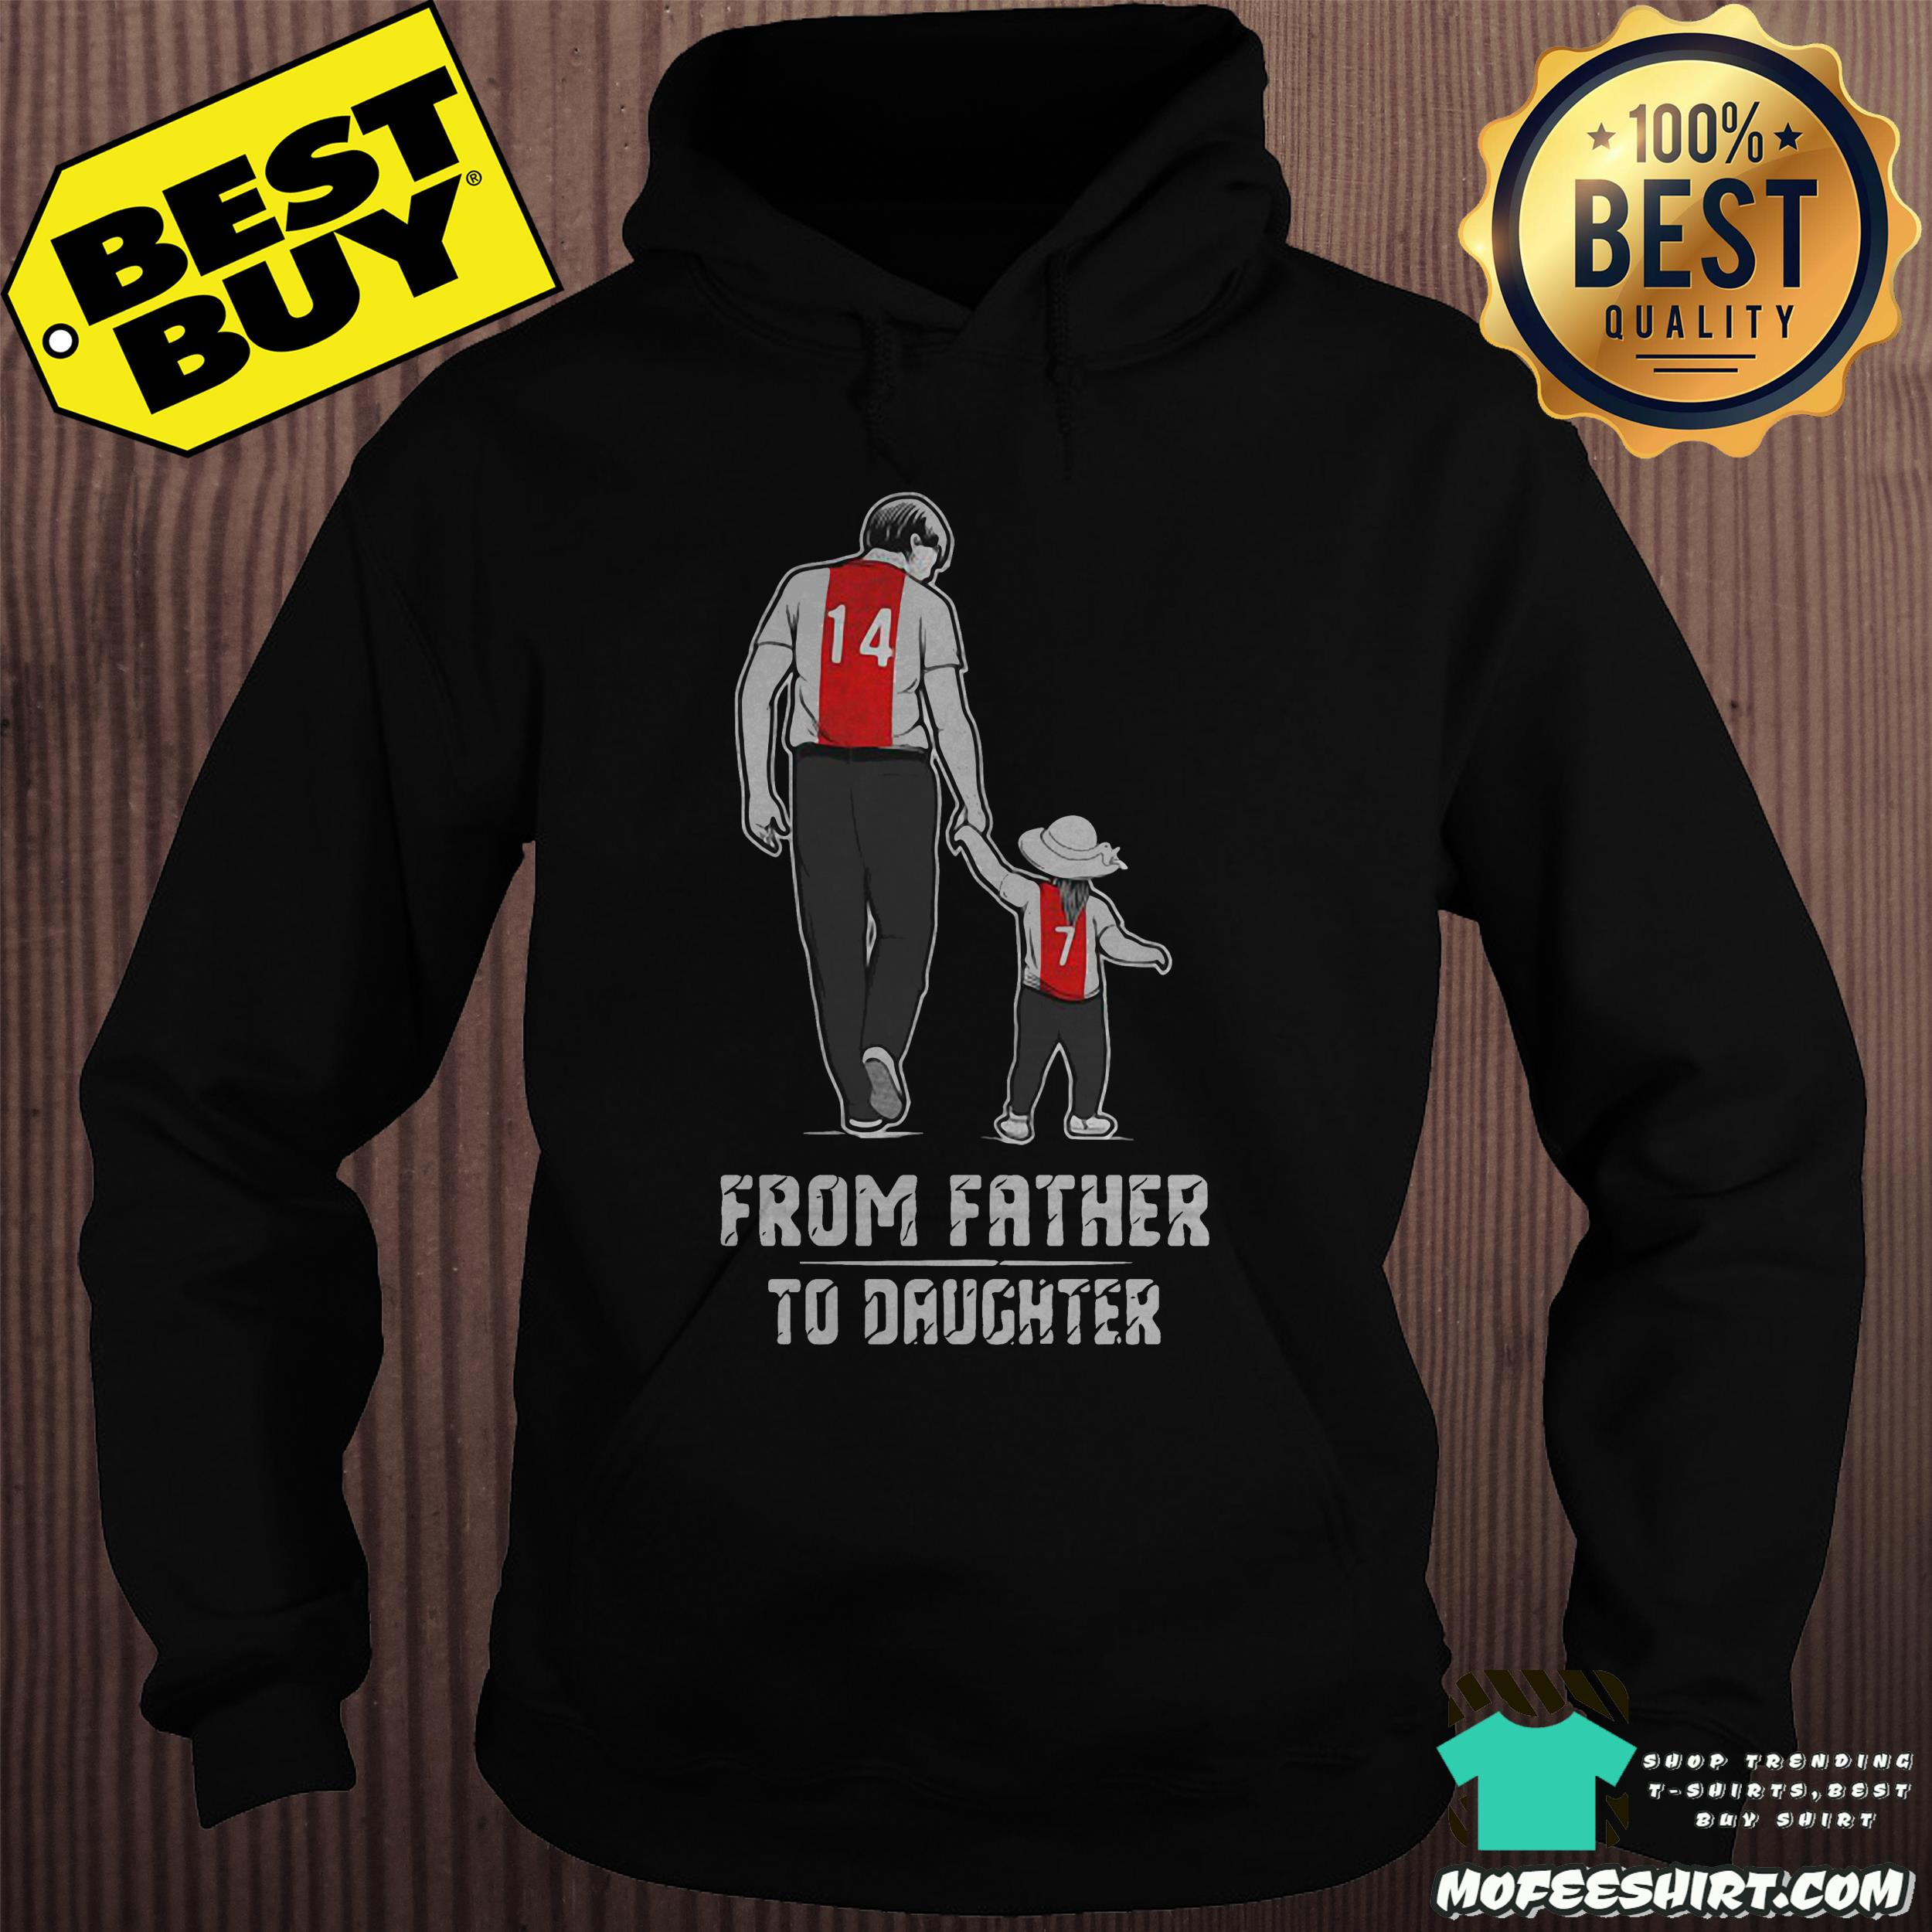 From father to daughter hoodie